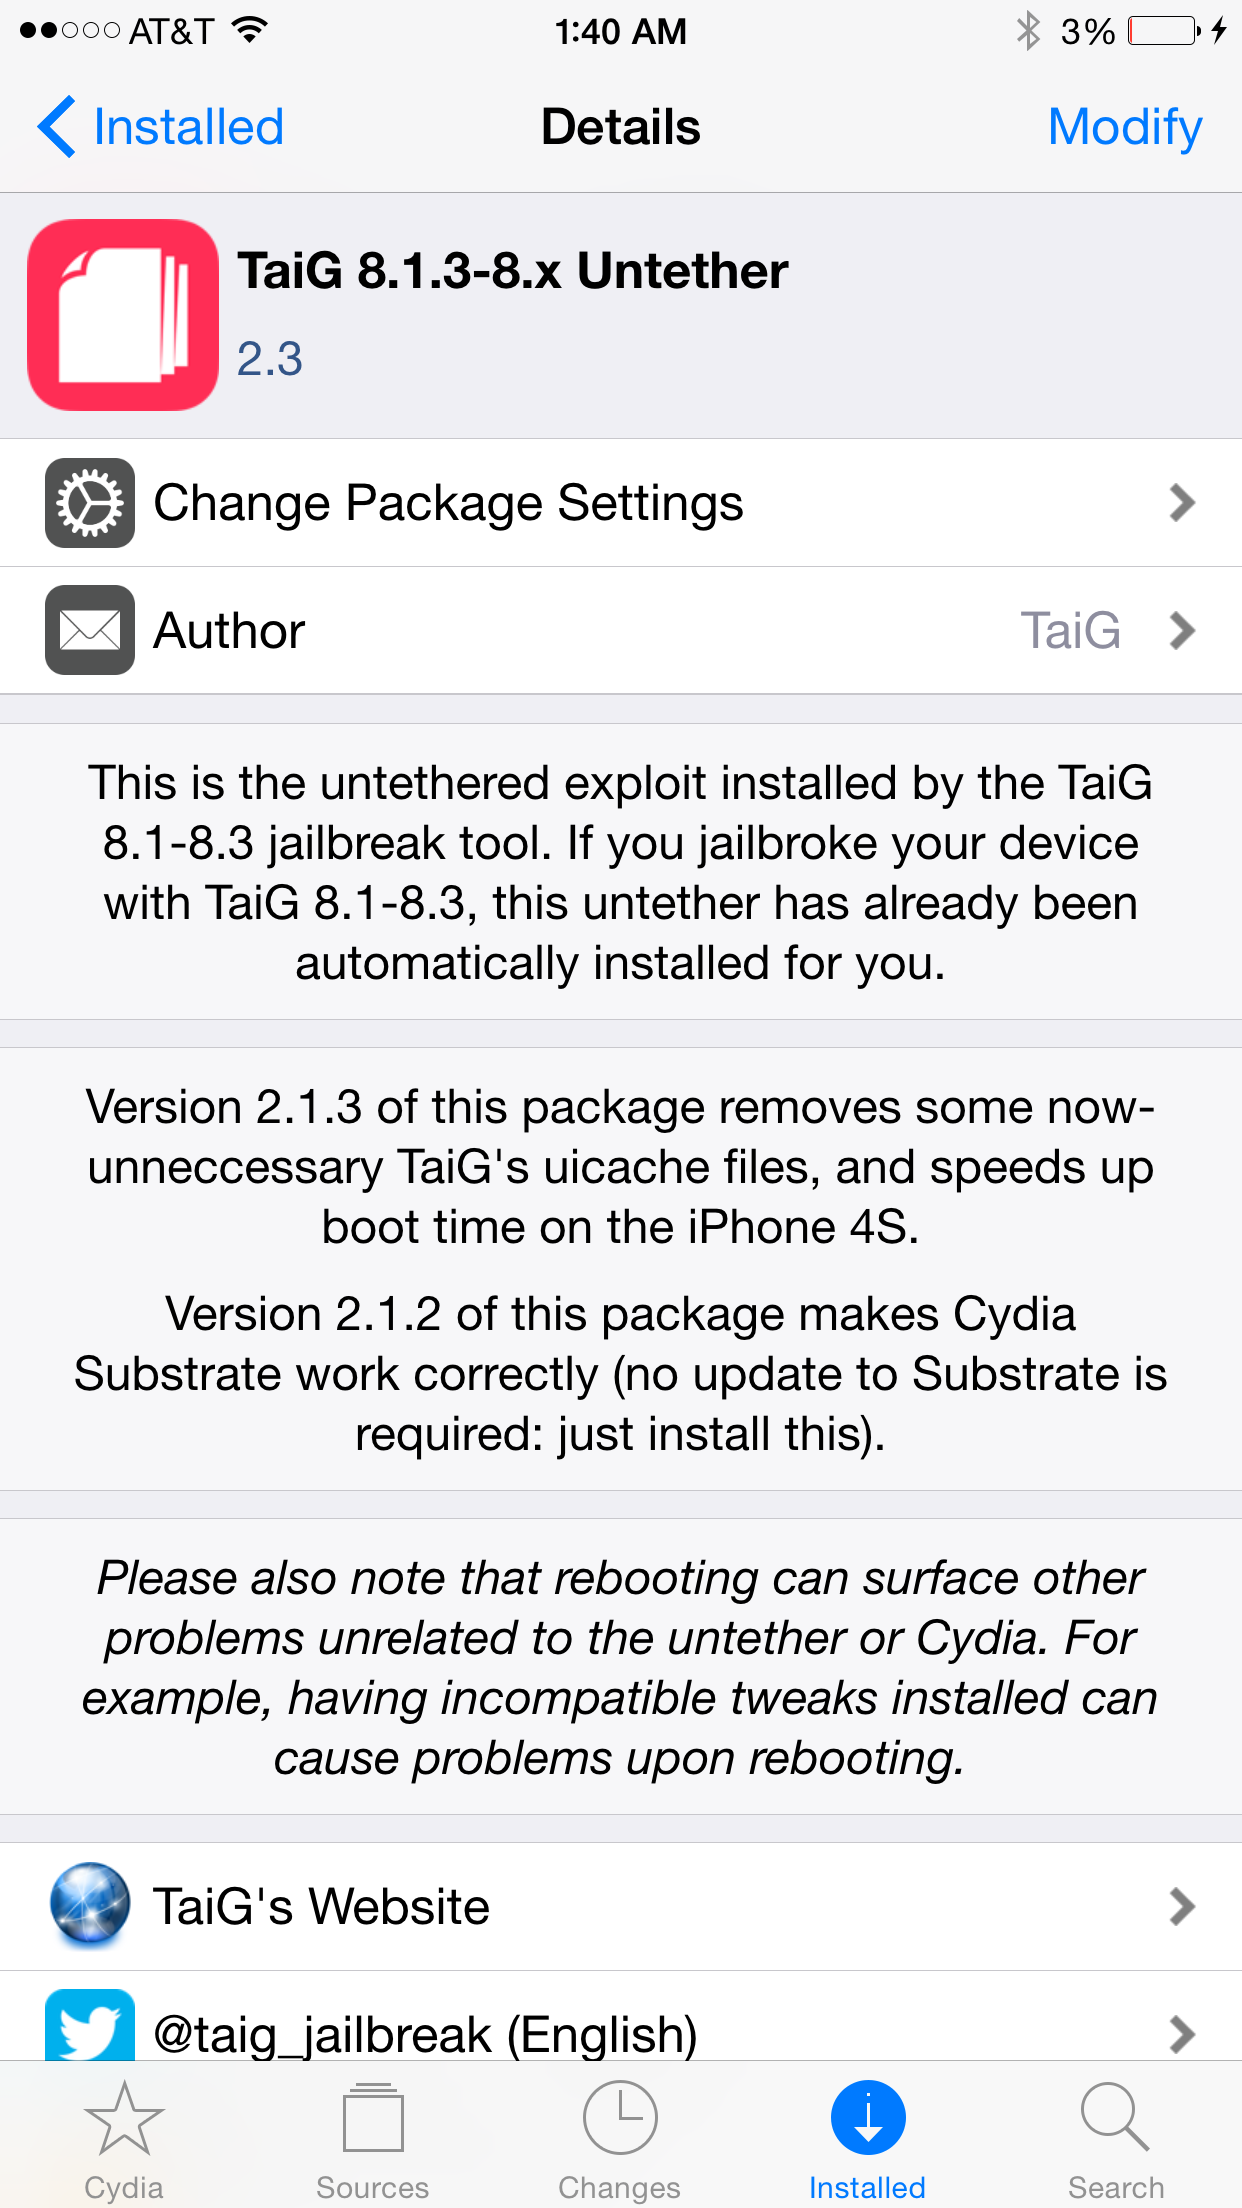 taig 2.3 on Cydia